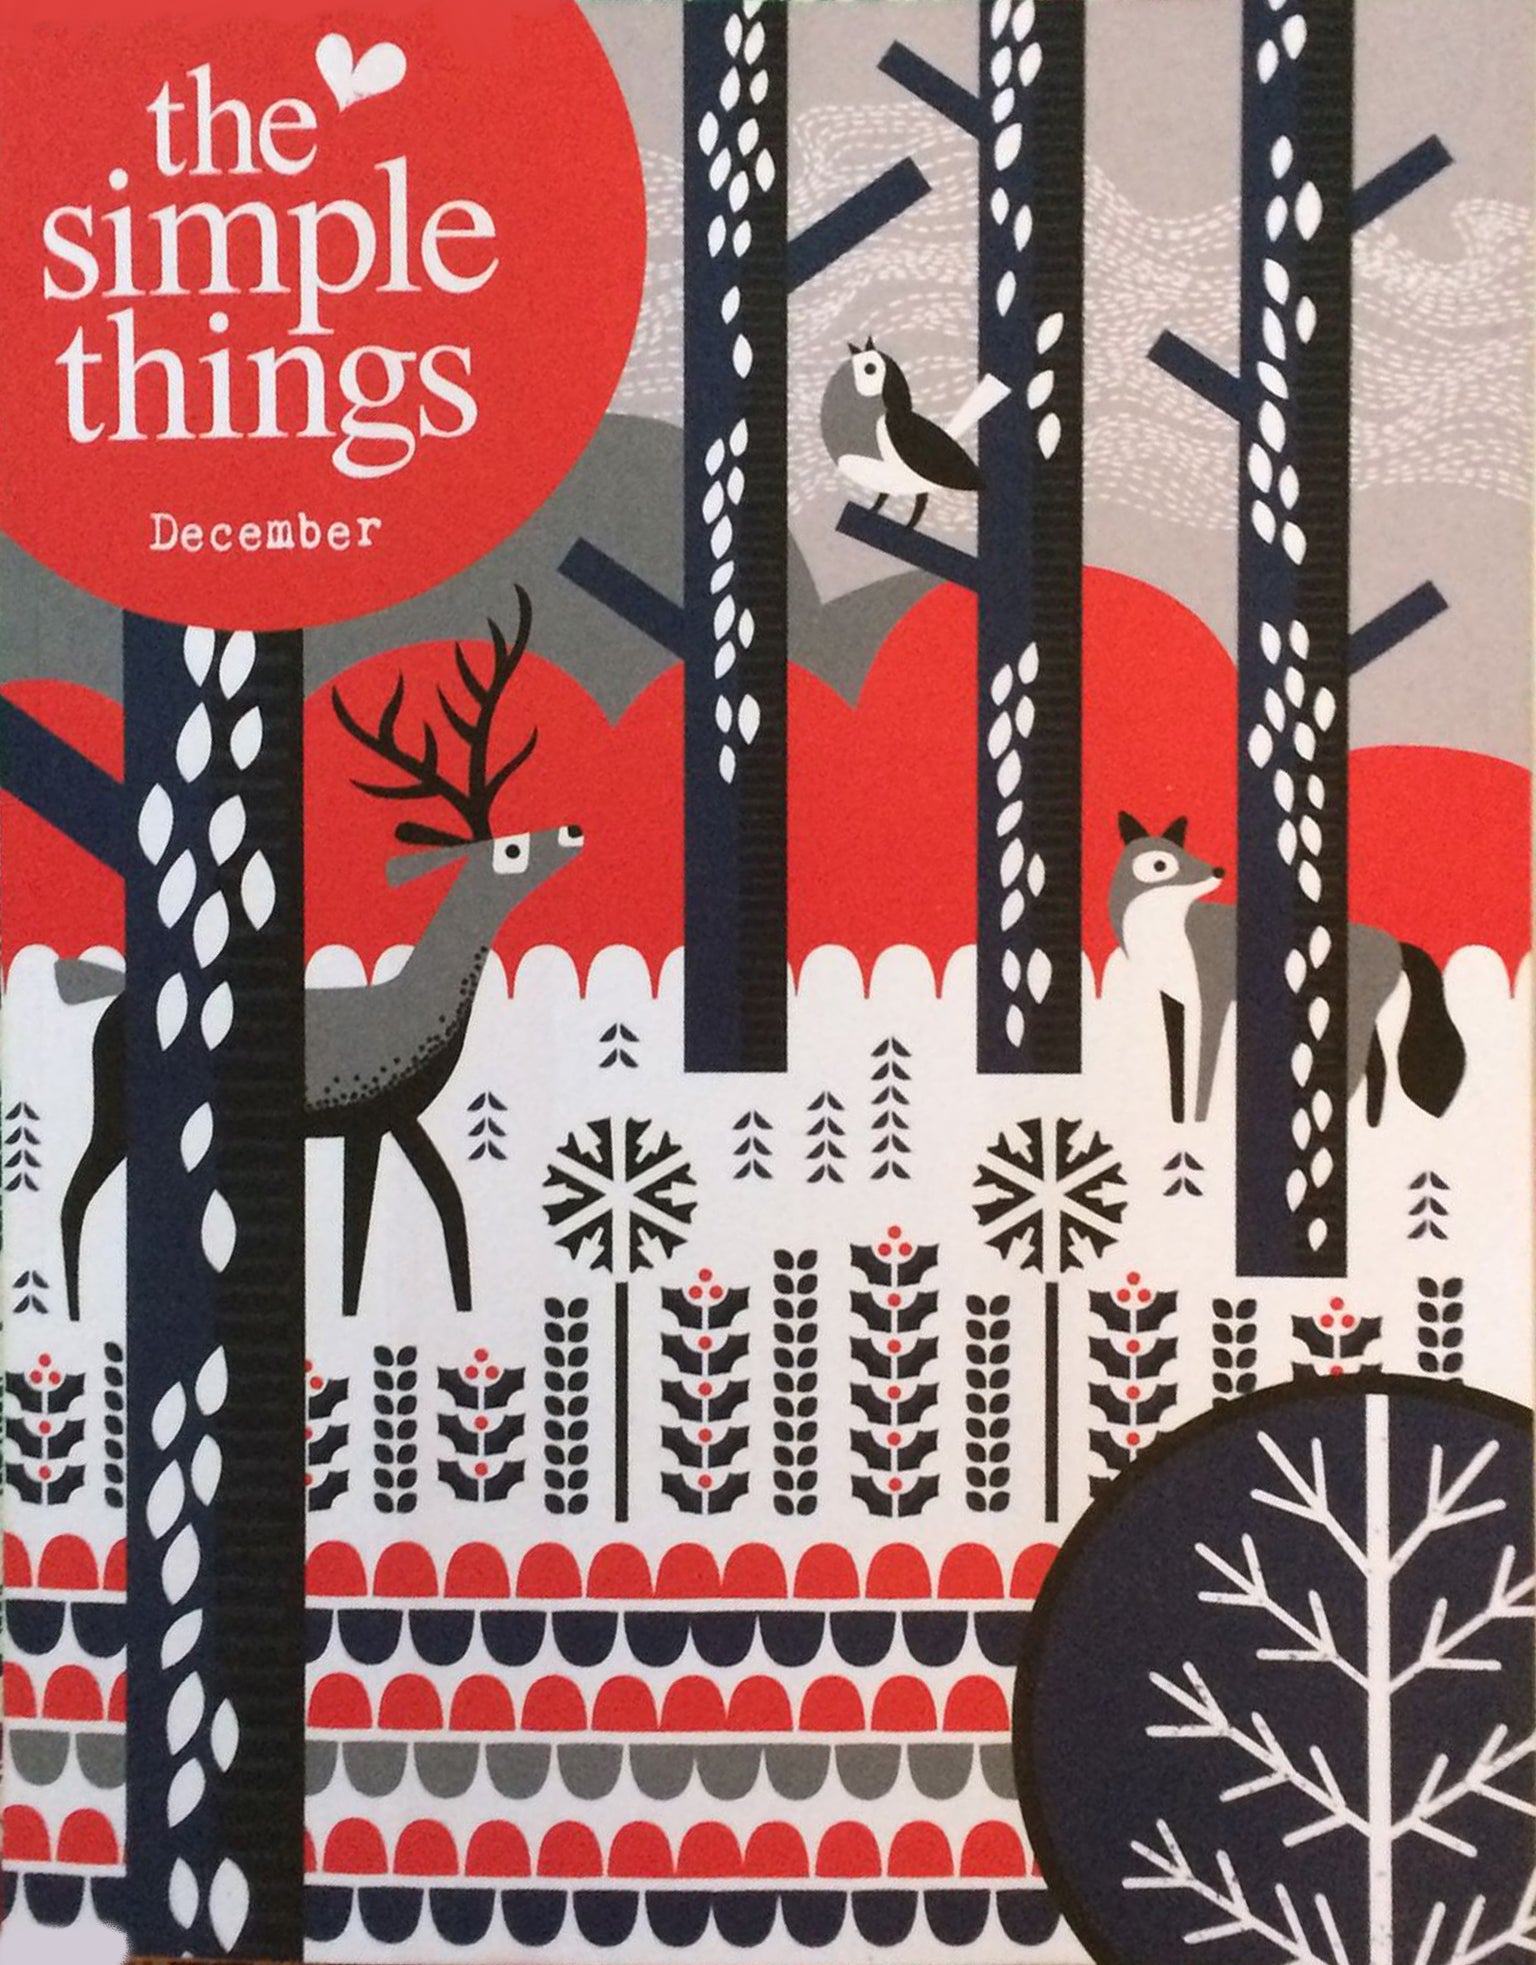 Simple Things Magazine Cover Kate Guy Lino Cuts of the Twelve Days of Christmas